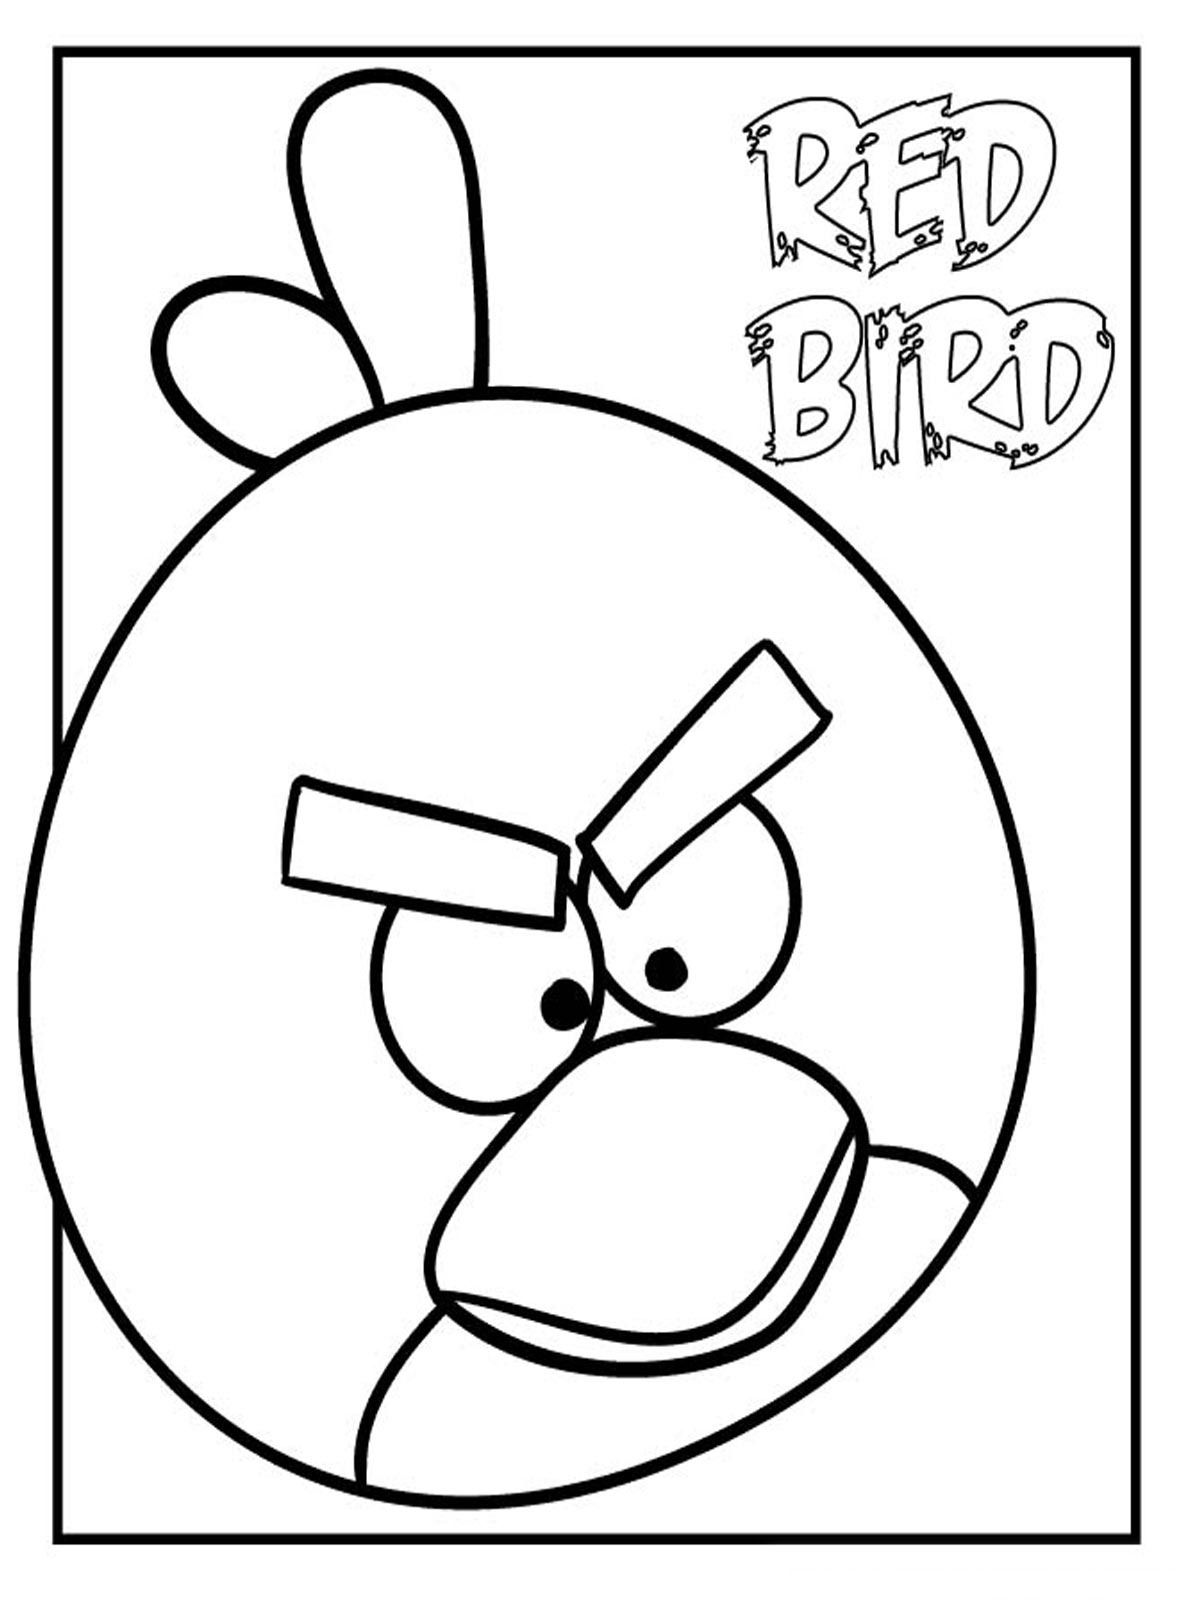 Free Coloring Pages To Print